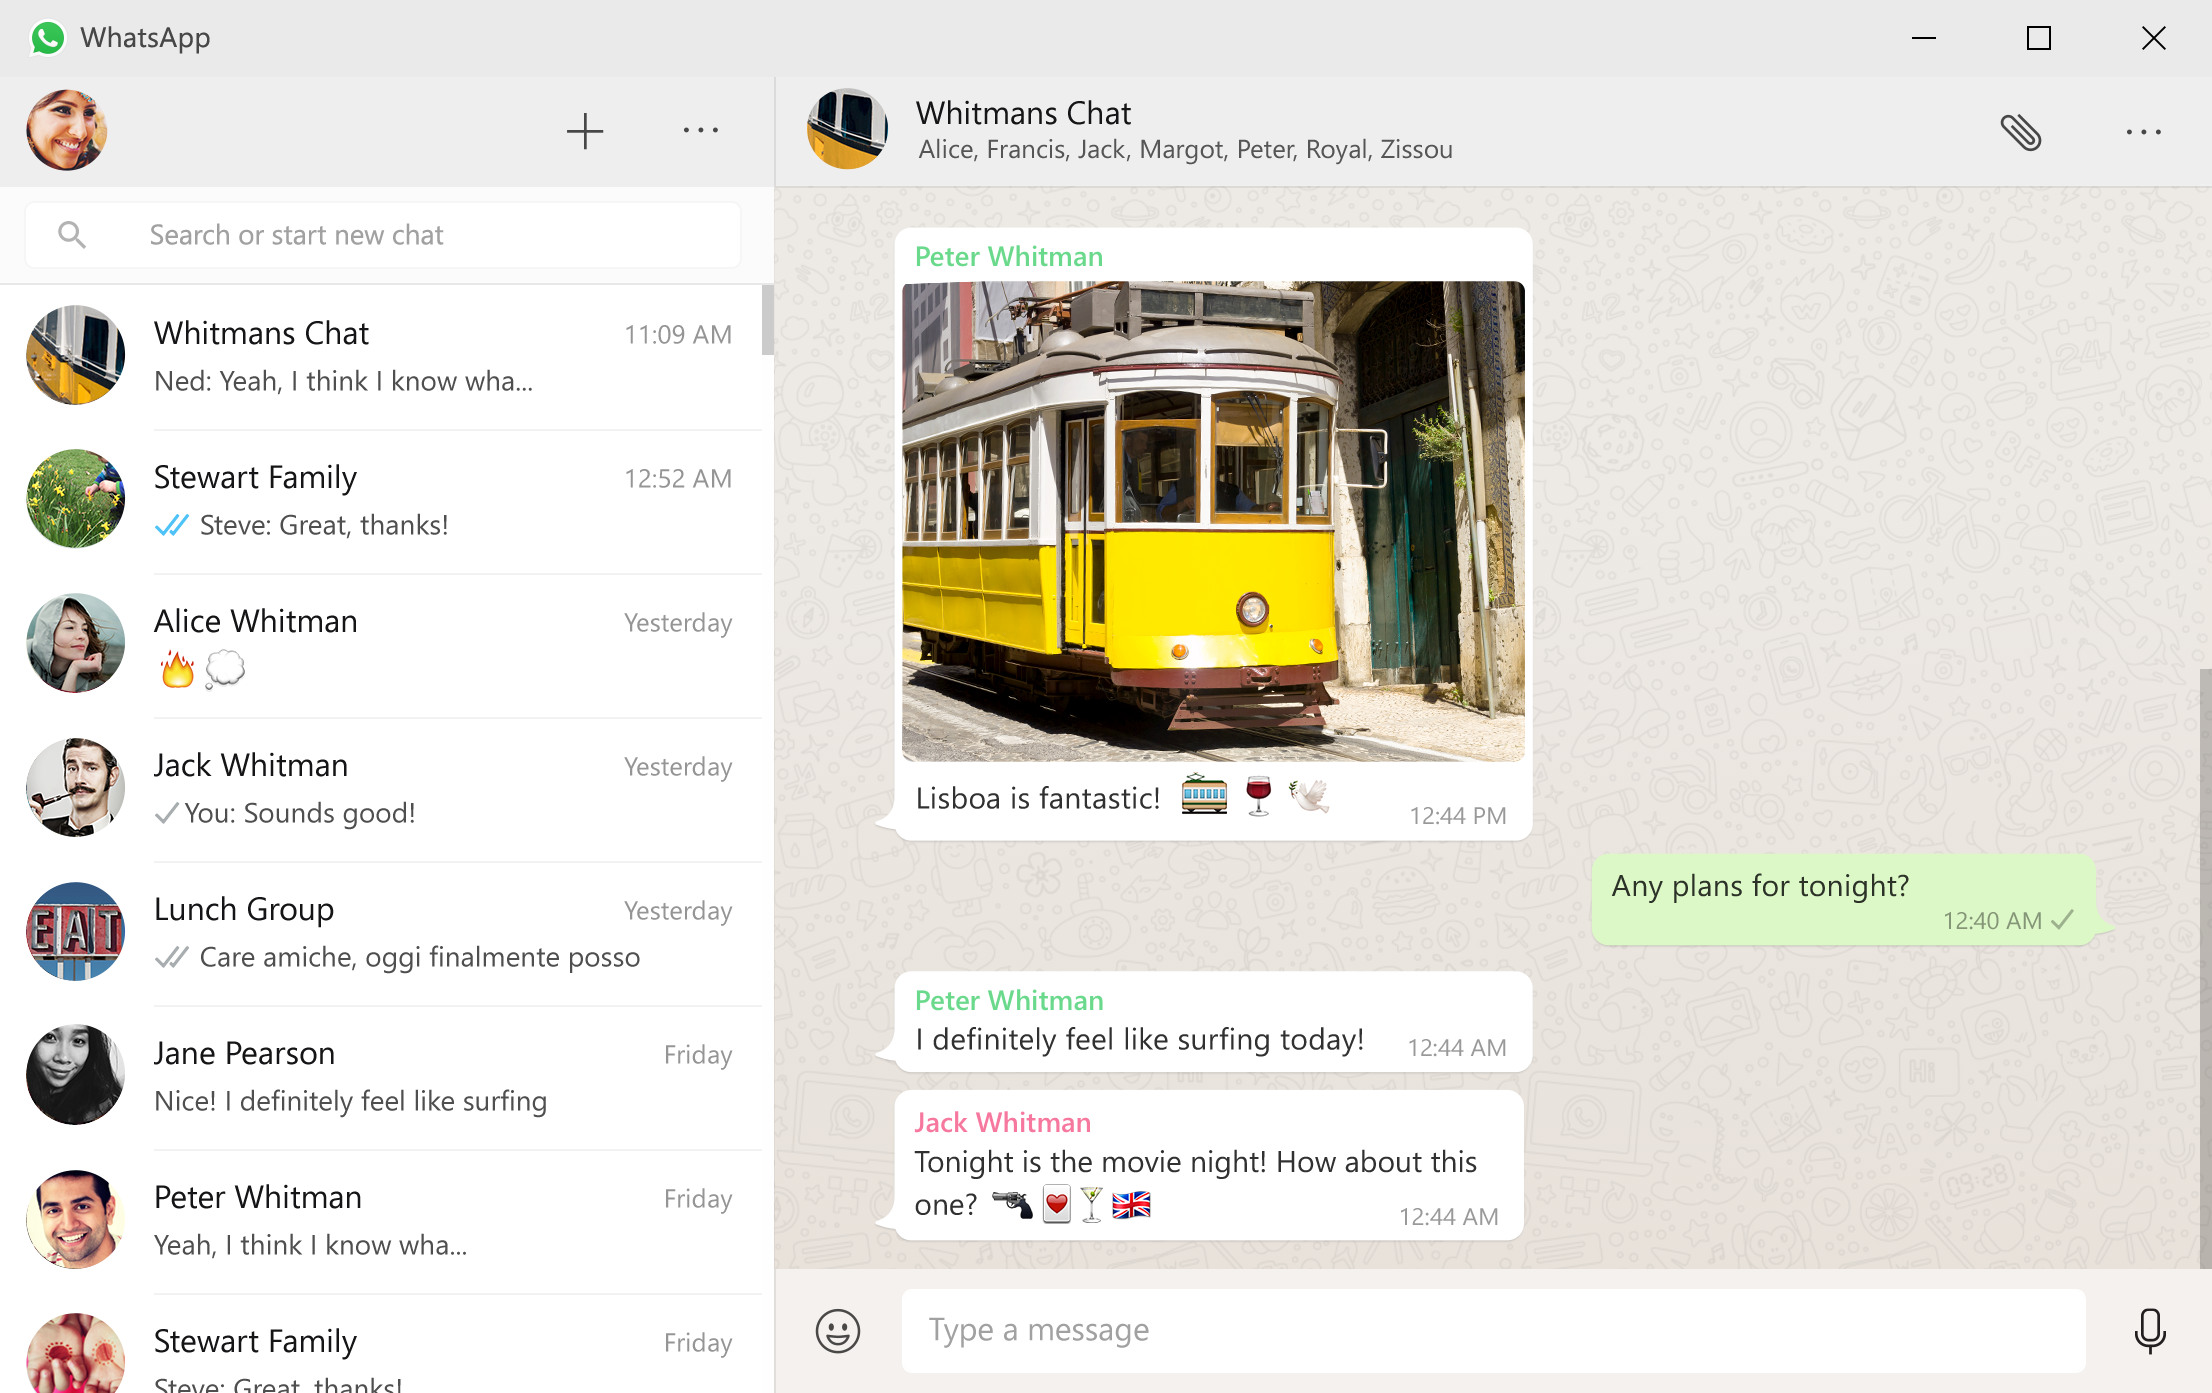 Download WhatsApp Finally On Windows 10 Desktop App